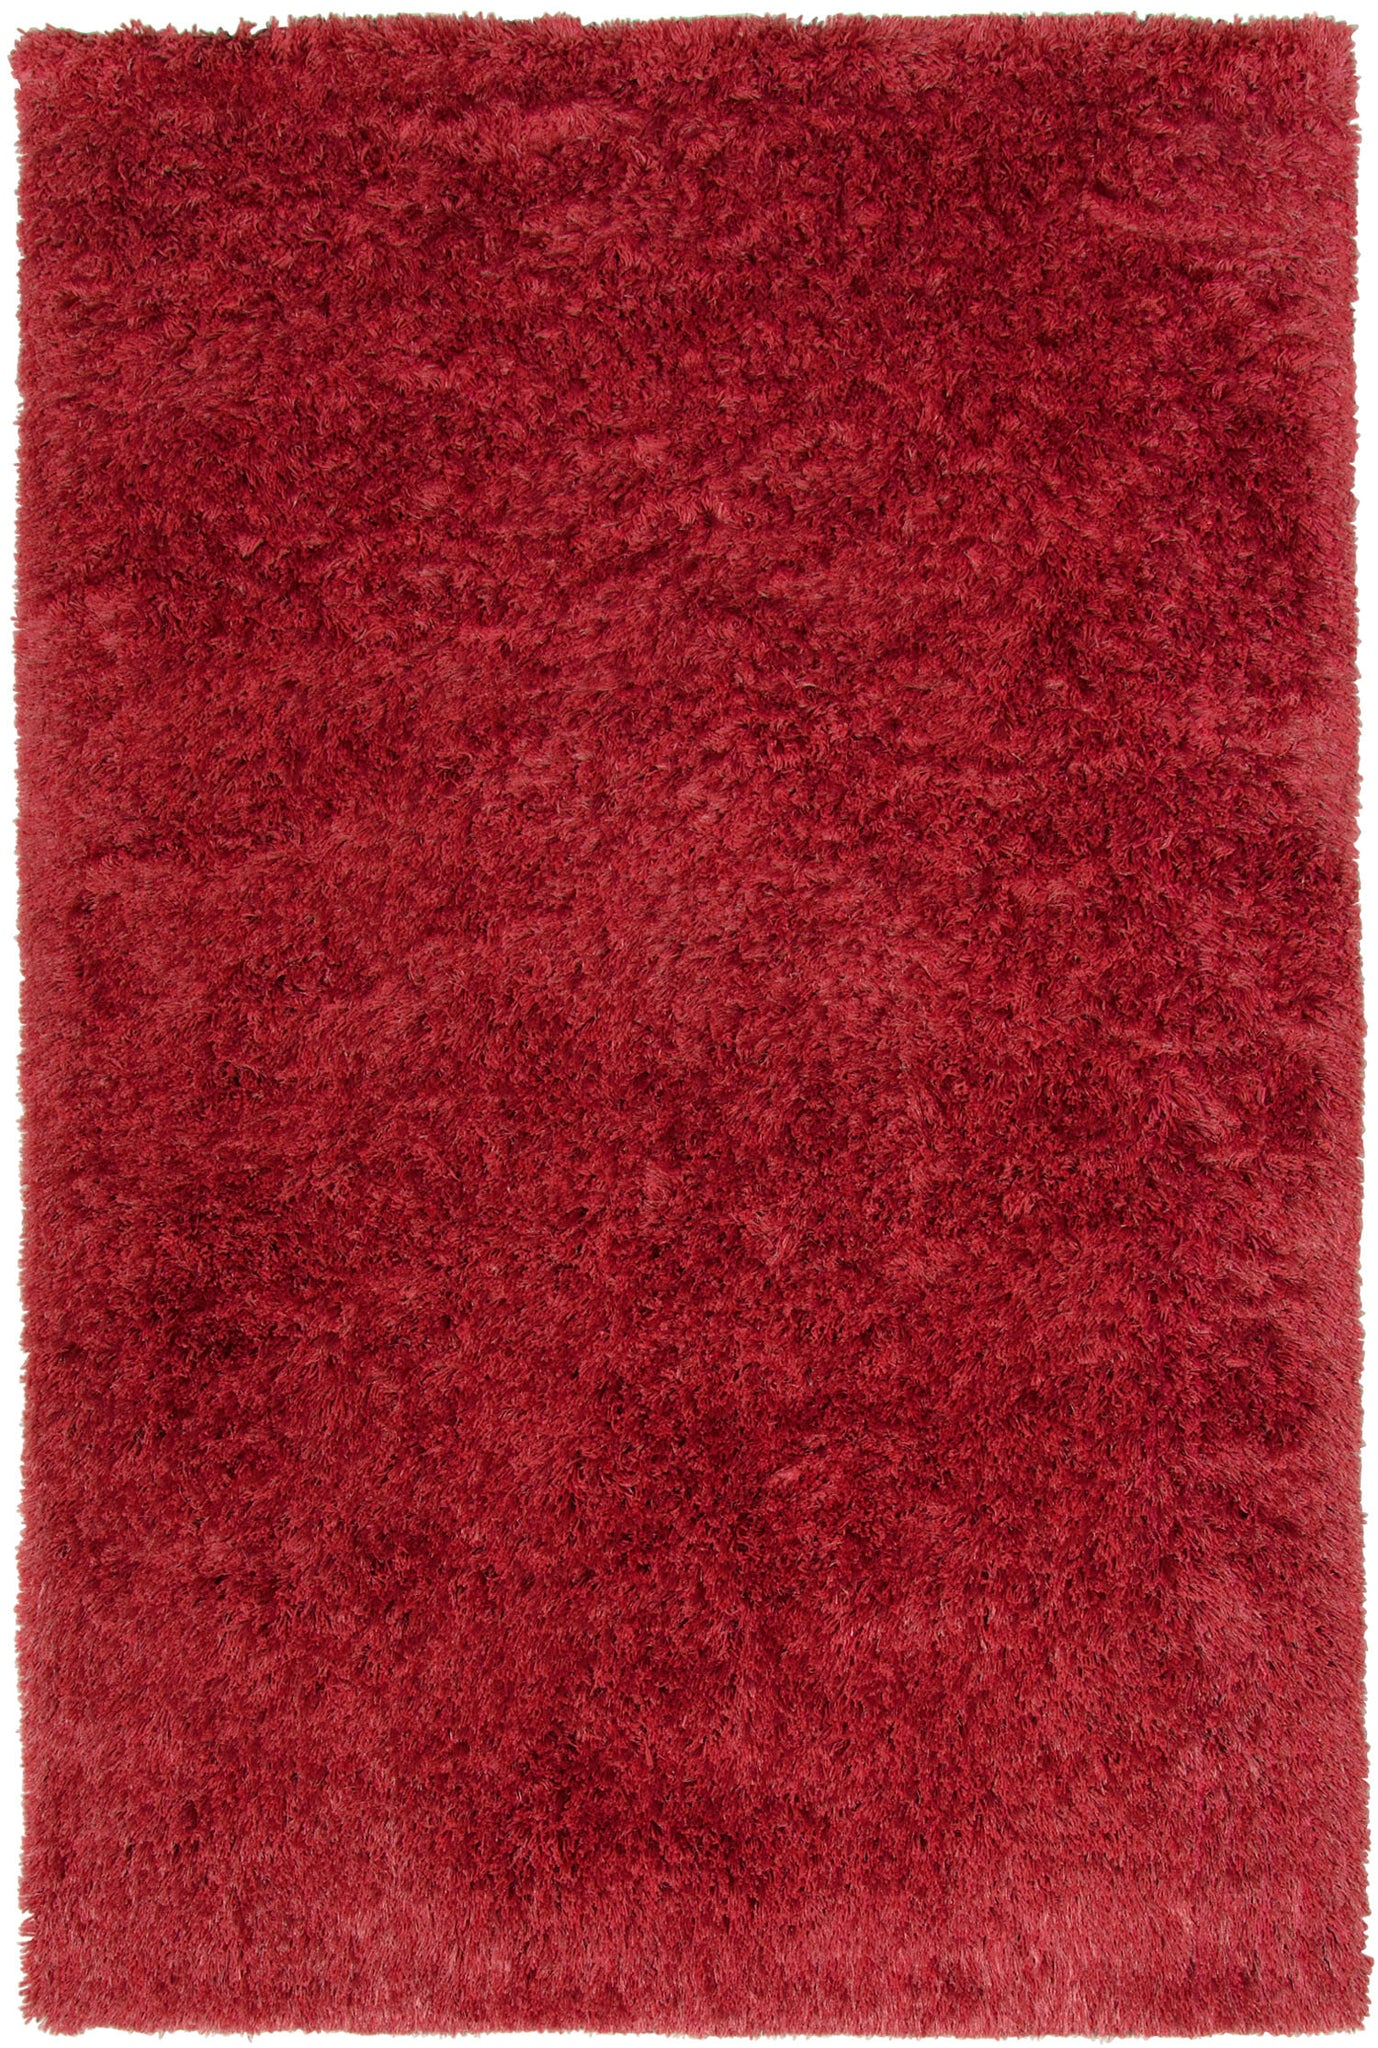 Capel Trolley Line 3250 Hot Pepper 550 Area Rug main image